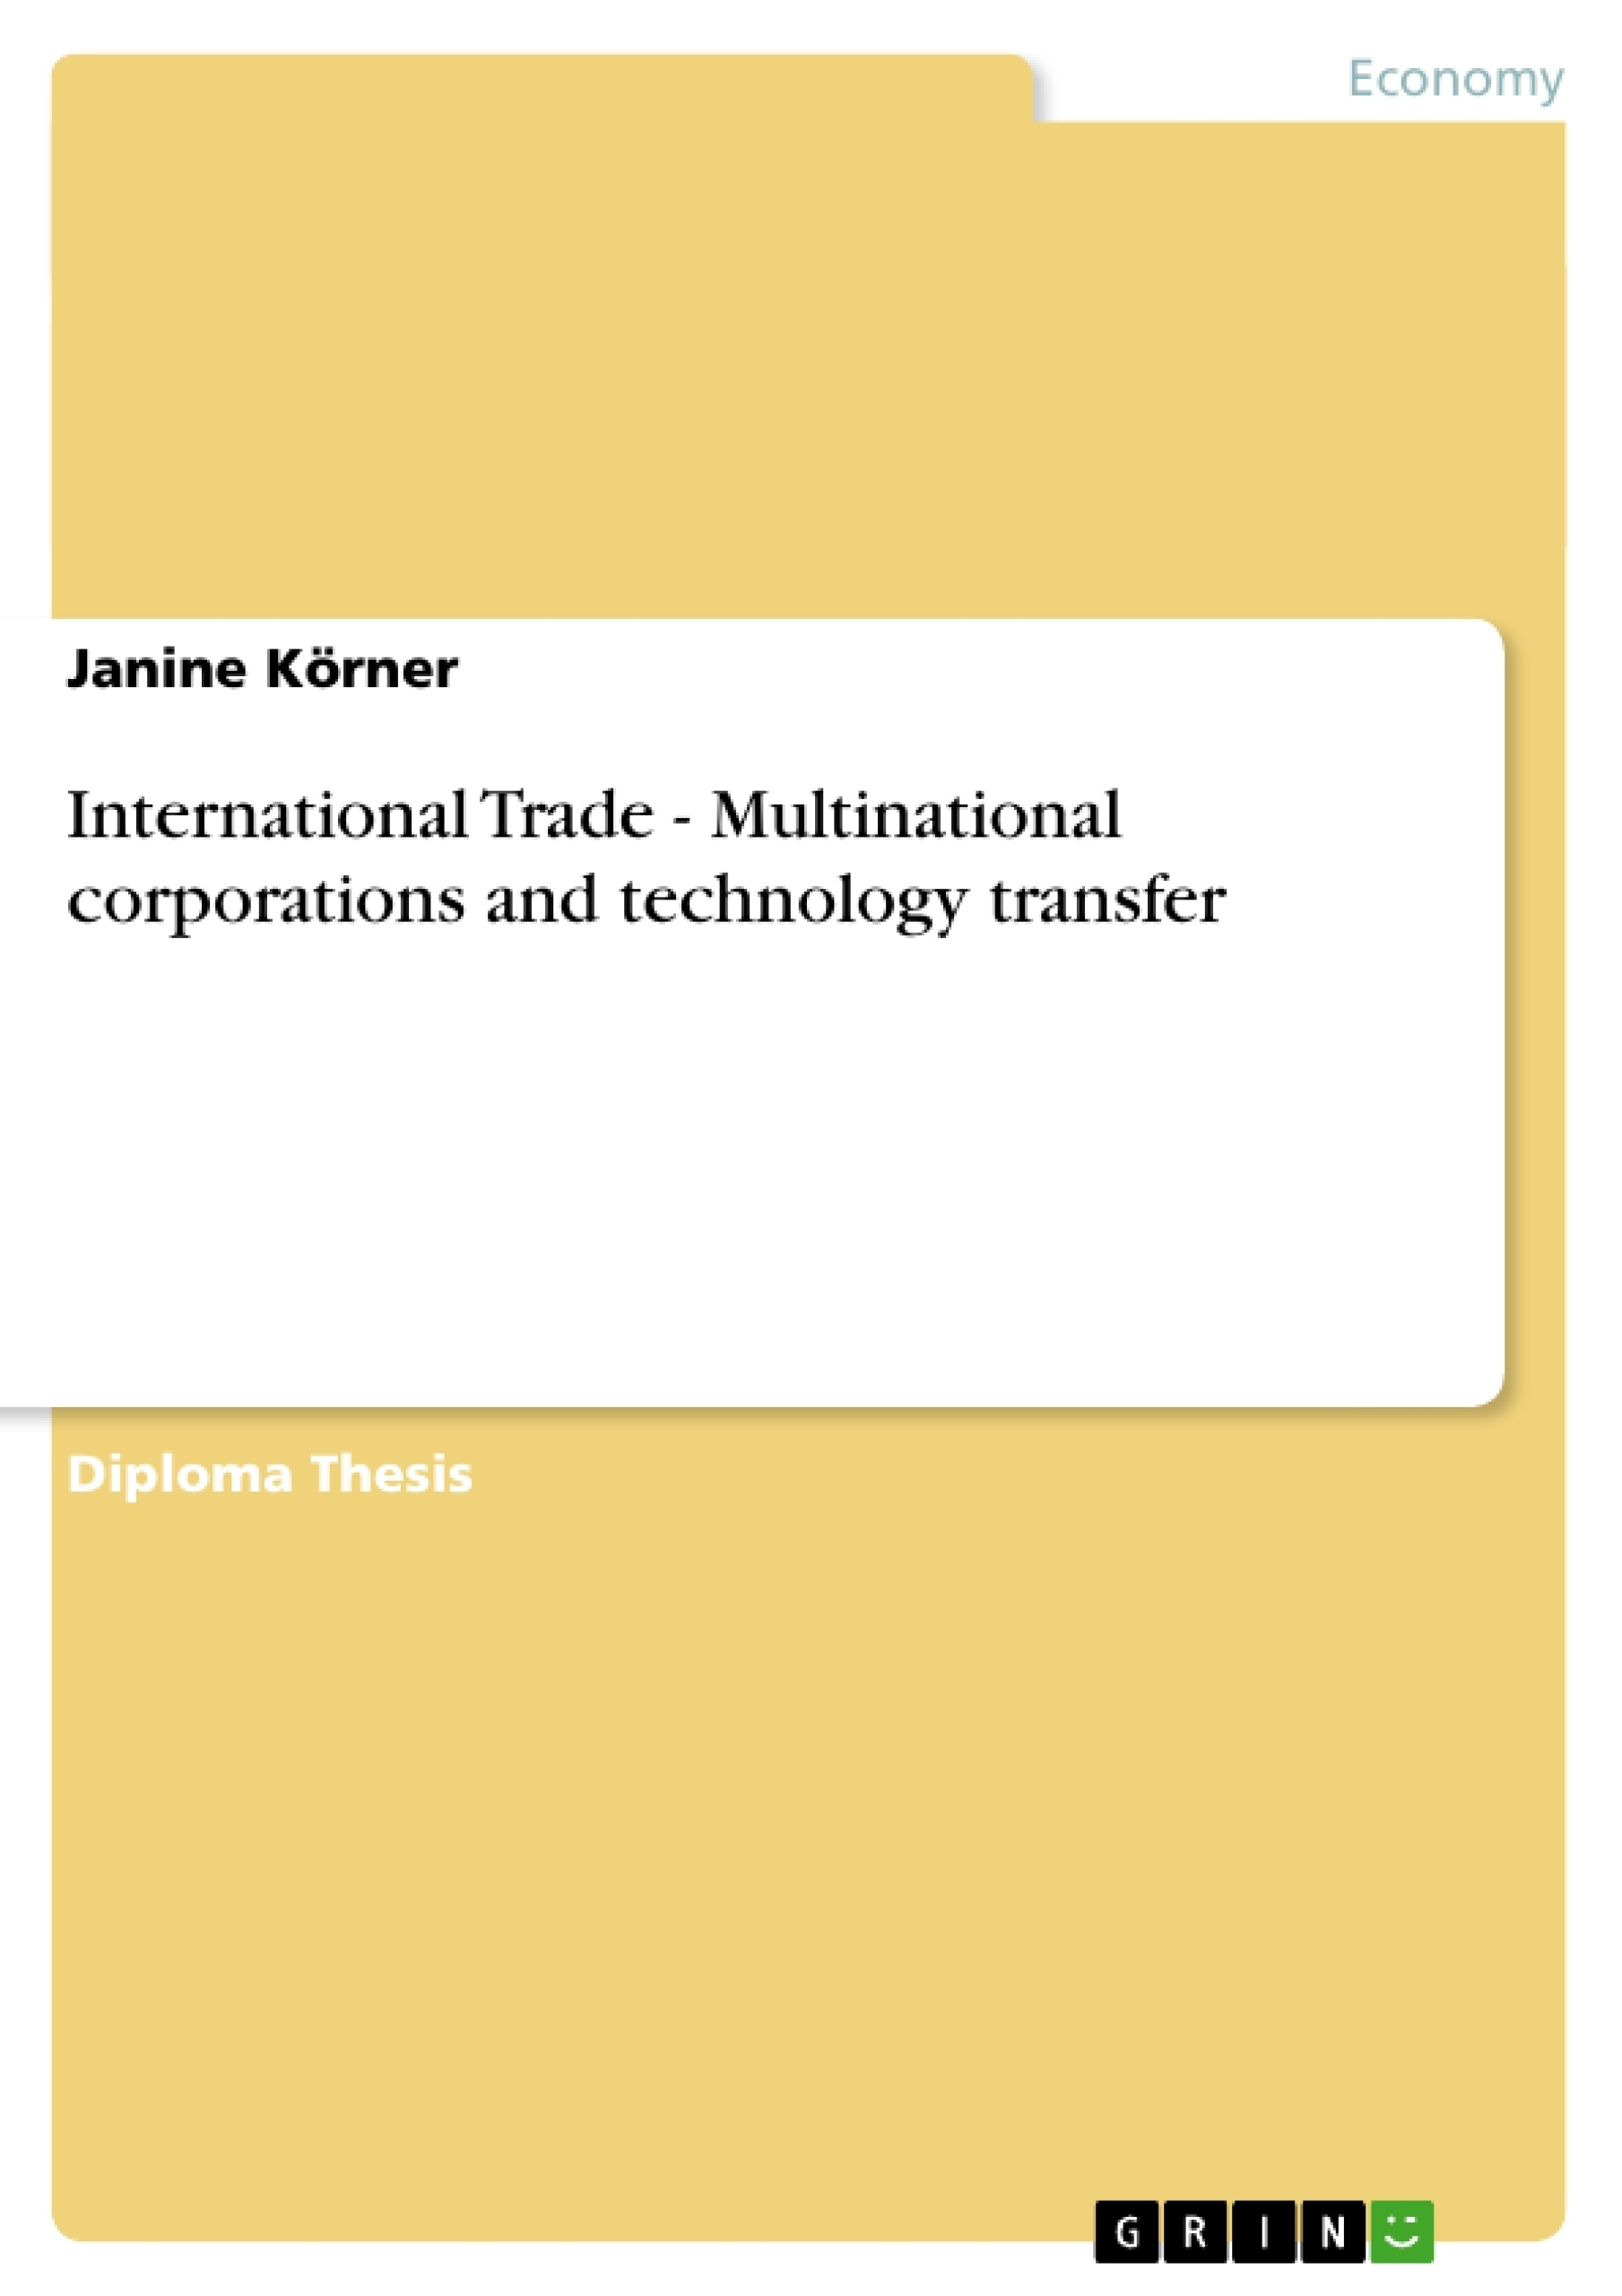 Thesis on international trade